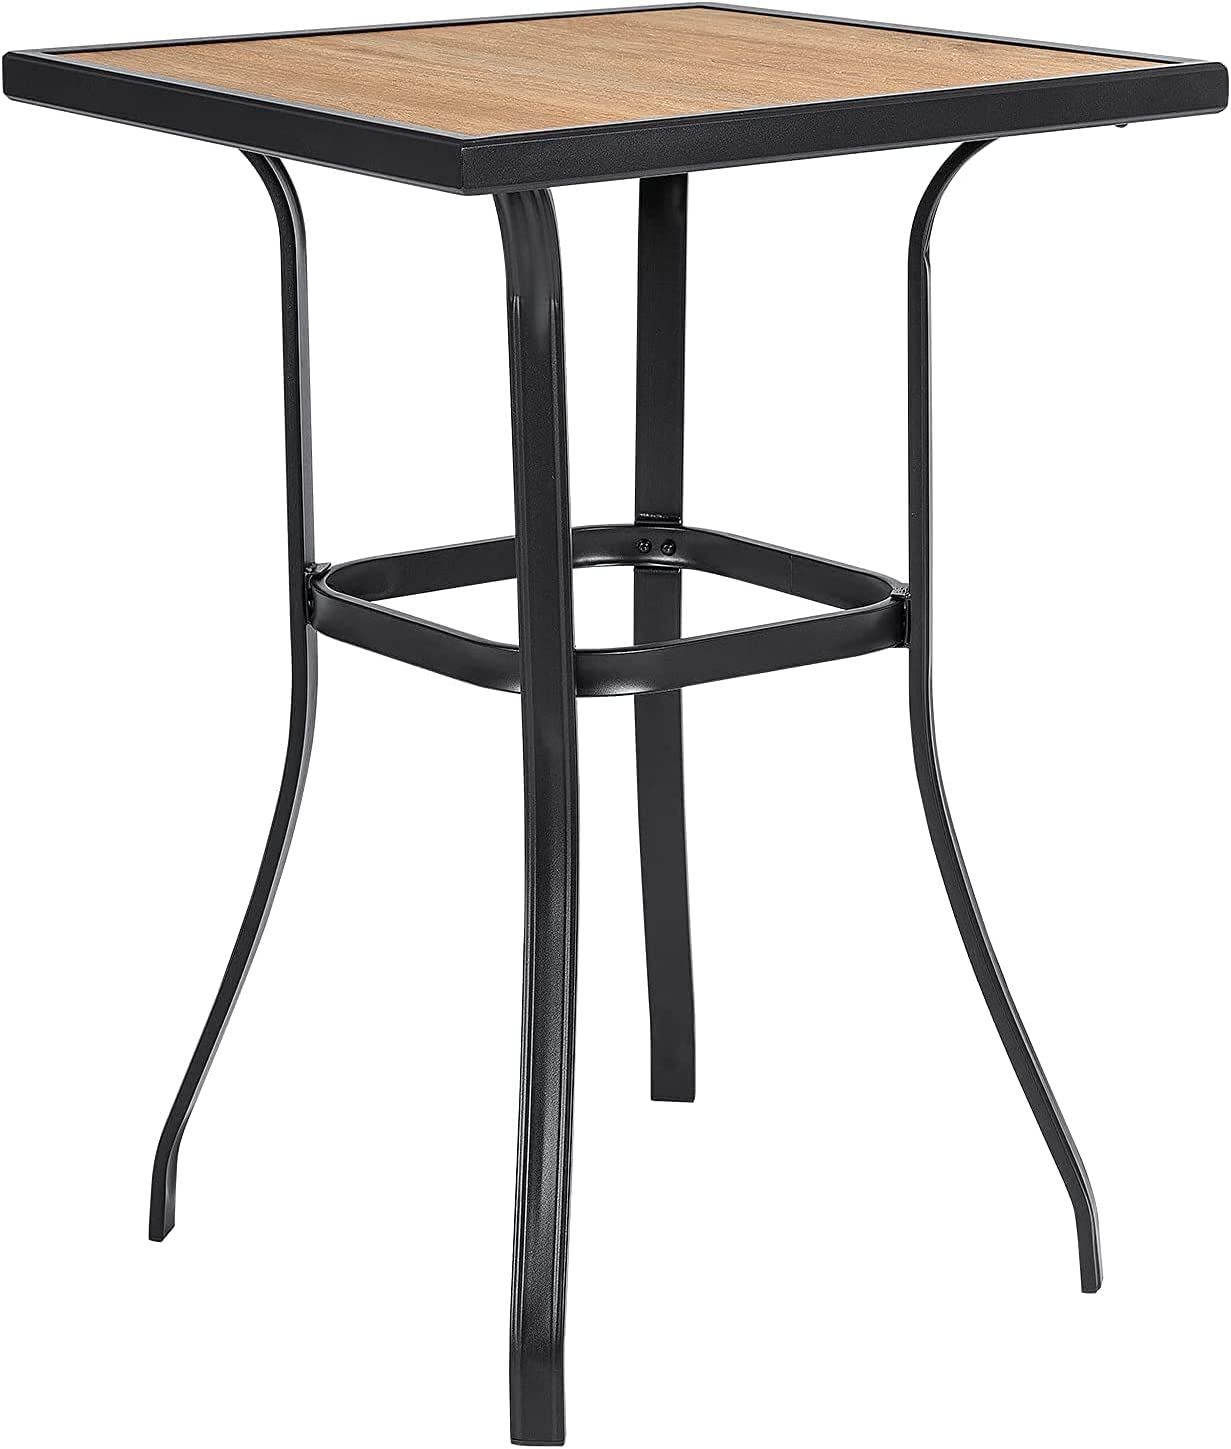 SOLAURA 通販 初売り Patio Bar Table Outdoor Bistro with Height 39